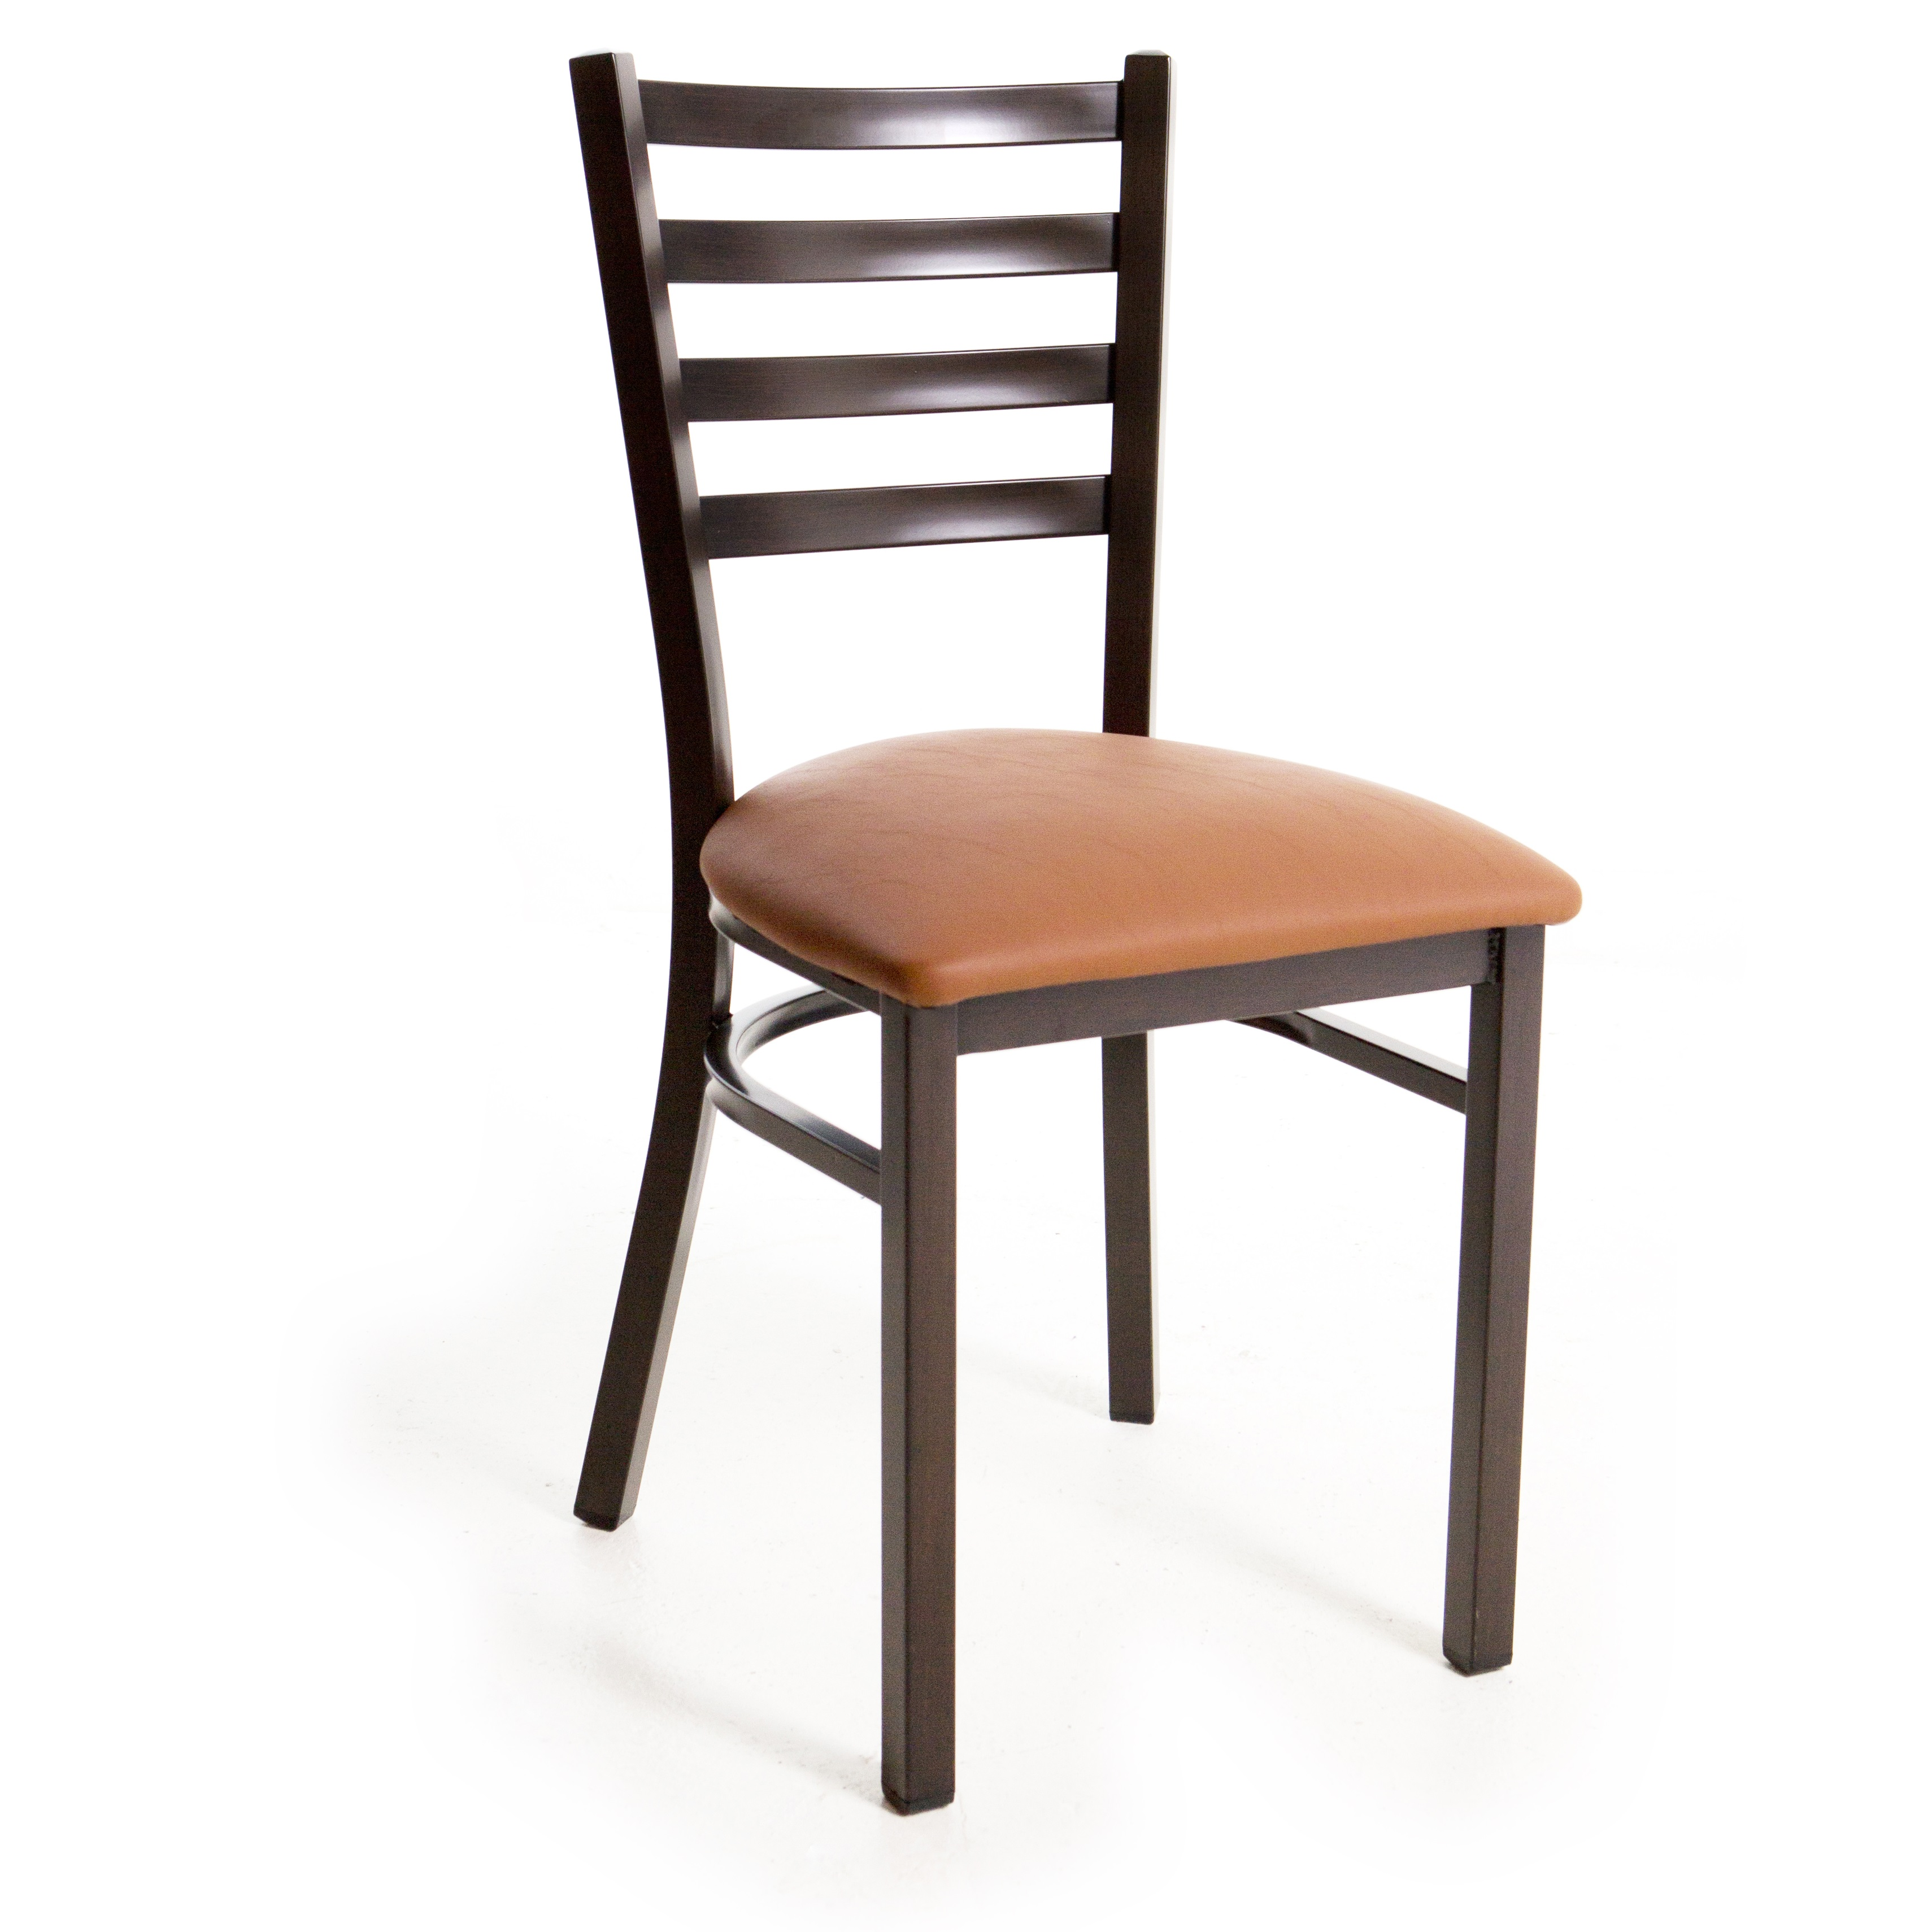 Steel Chairs Product : Chairs metal ladder back chair wood look